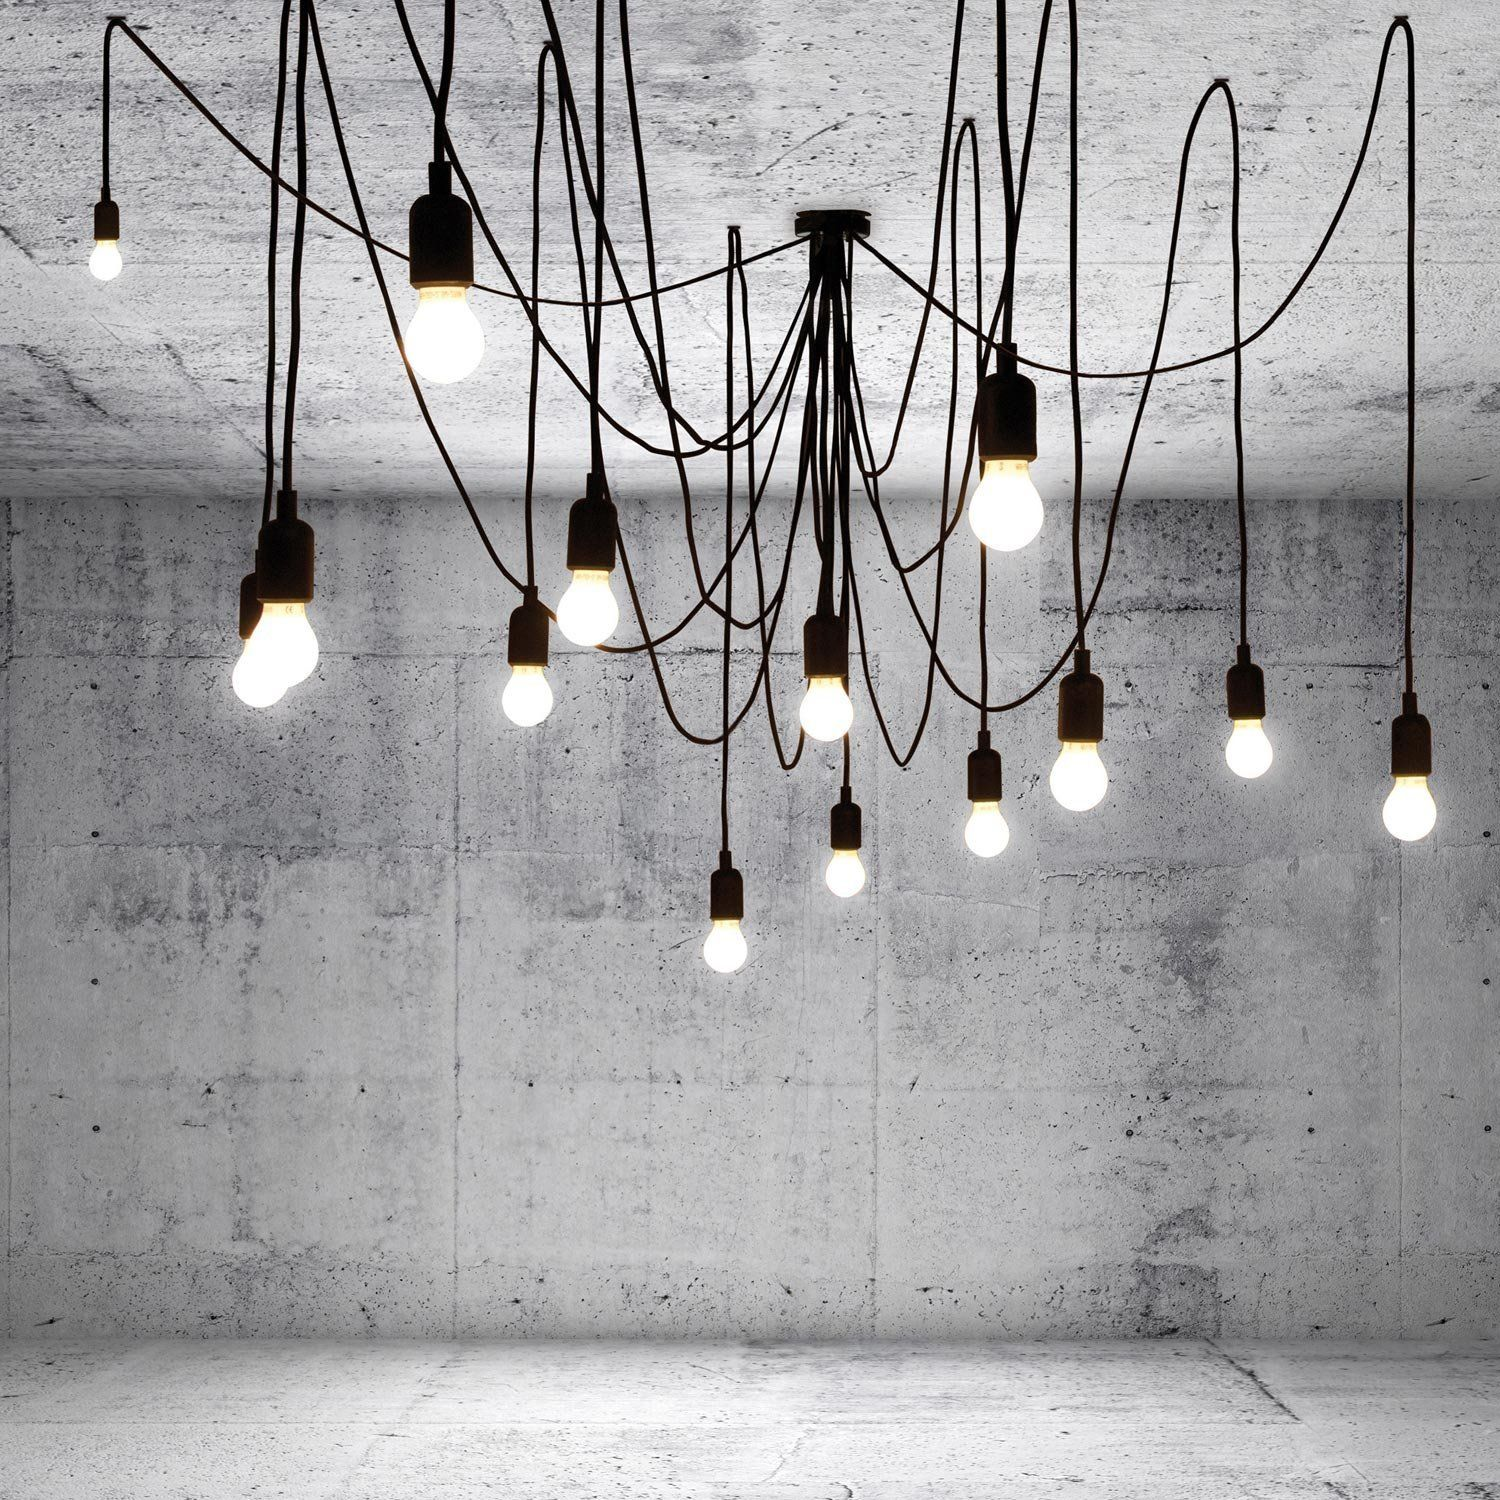 Seletti Maman Lampadario 14 Luci A Led Appendibili Filo Nero Amazon Voltage Ac E27 Pendant Light Lamp Holder Socket Without Wire Ceiling Amazonfr Luminaires Et Eclairage